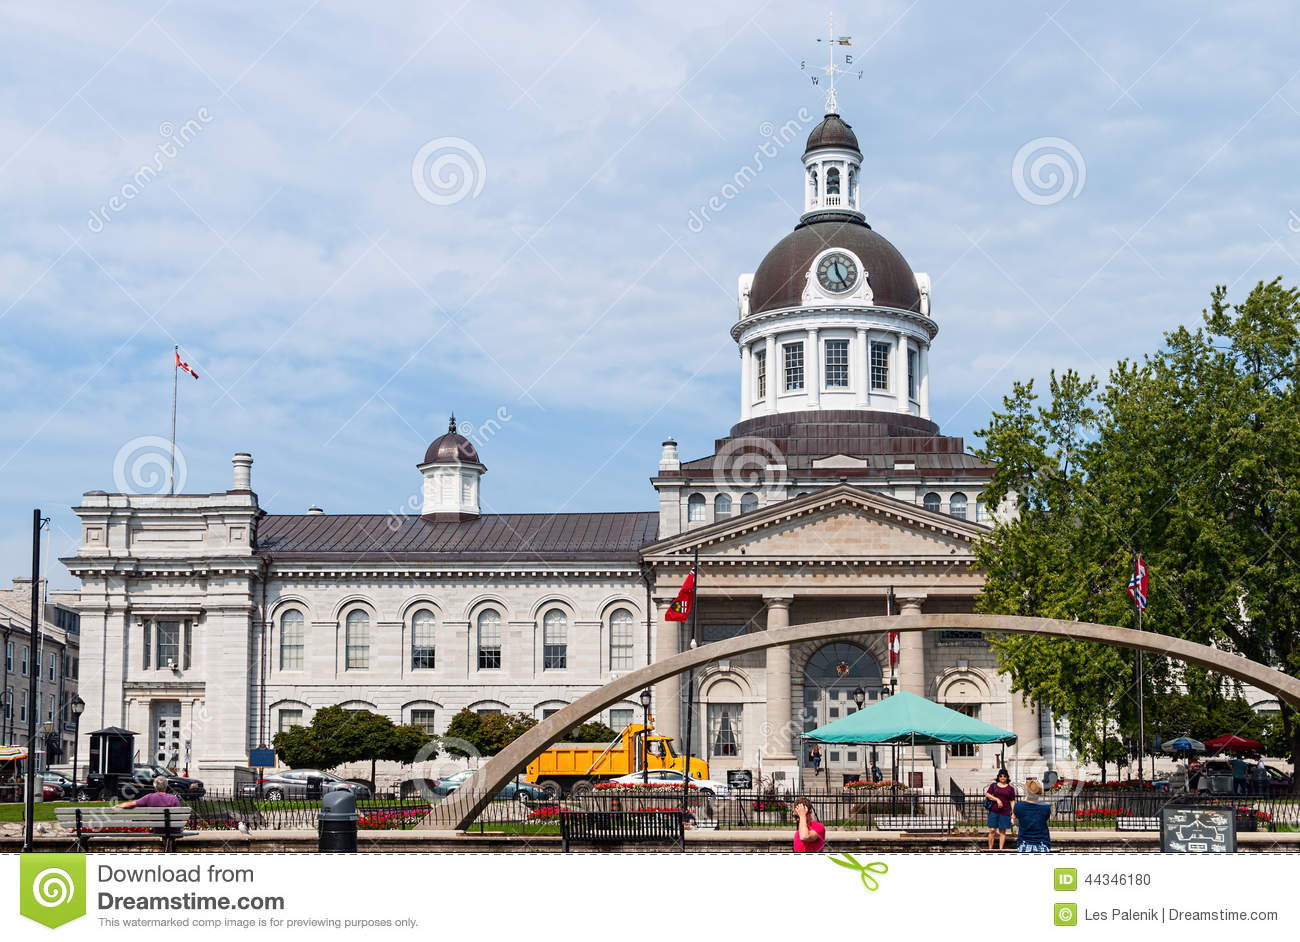 Kingston Cityhall